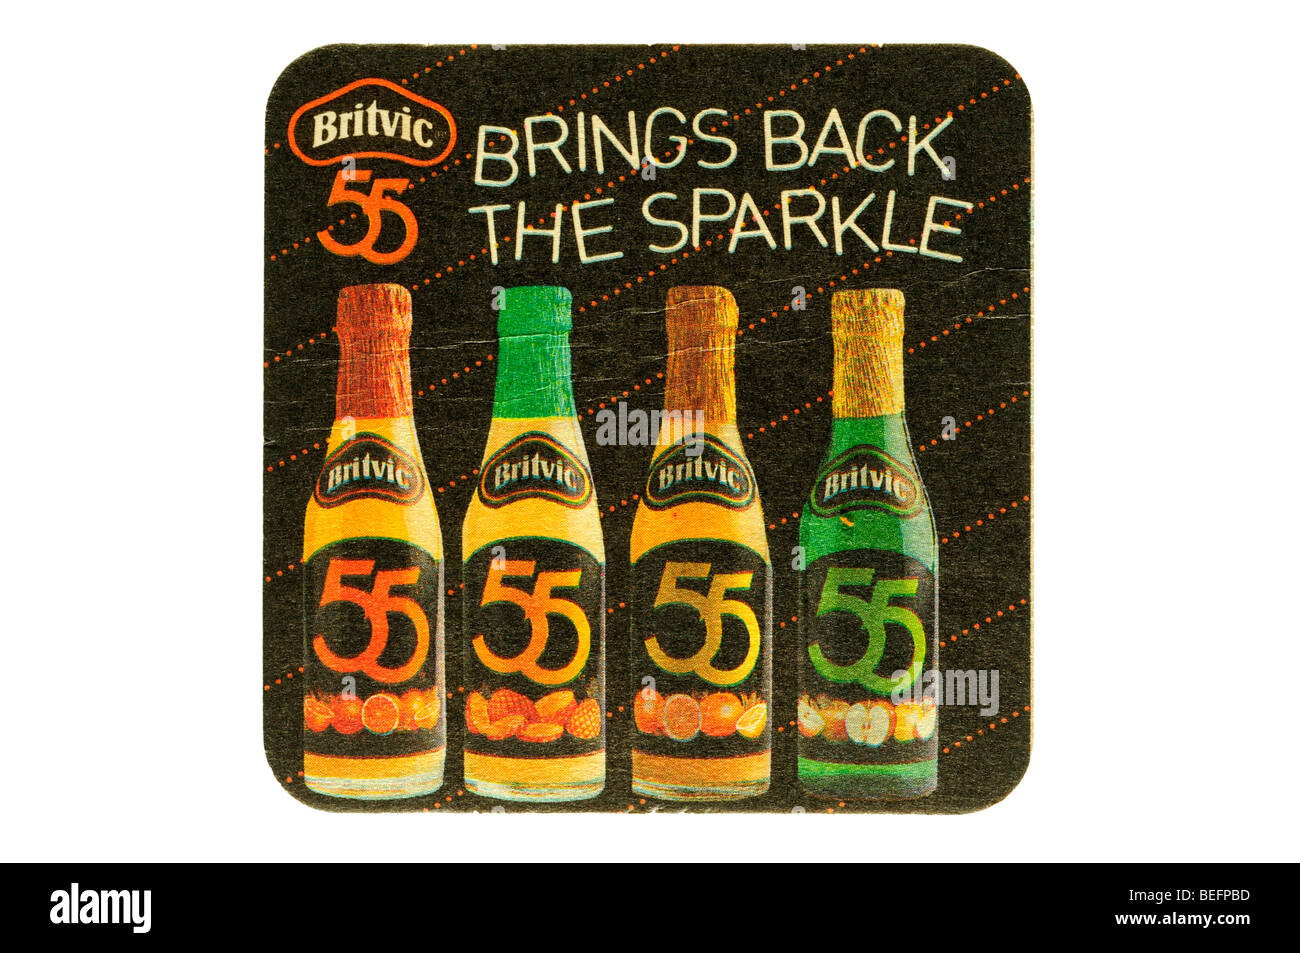 britvic 55 brings back the sparkle - Stock Image